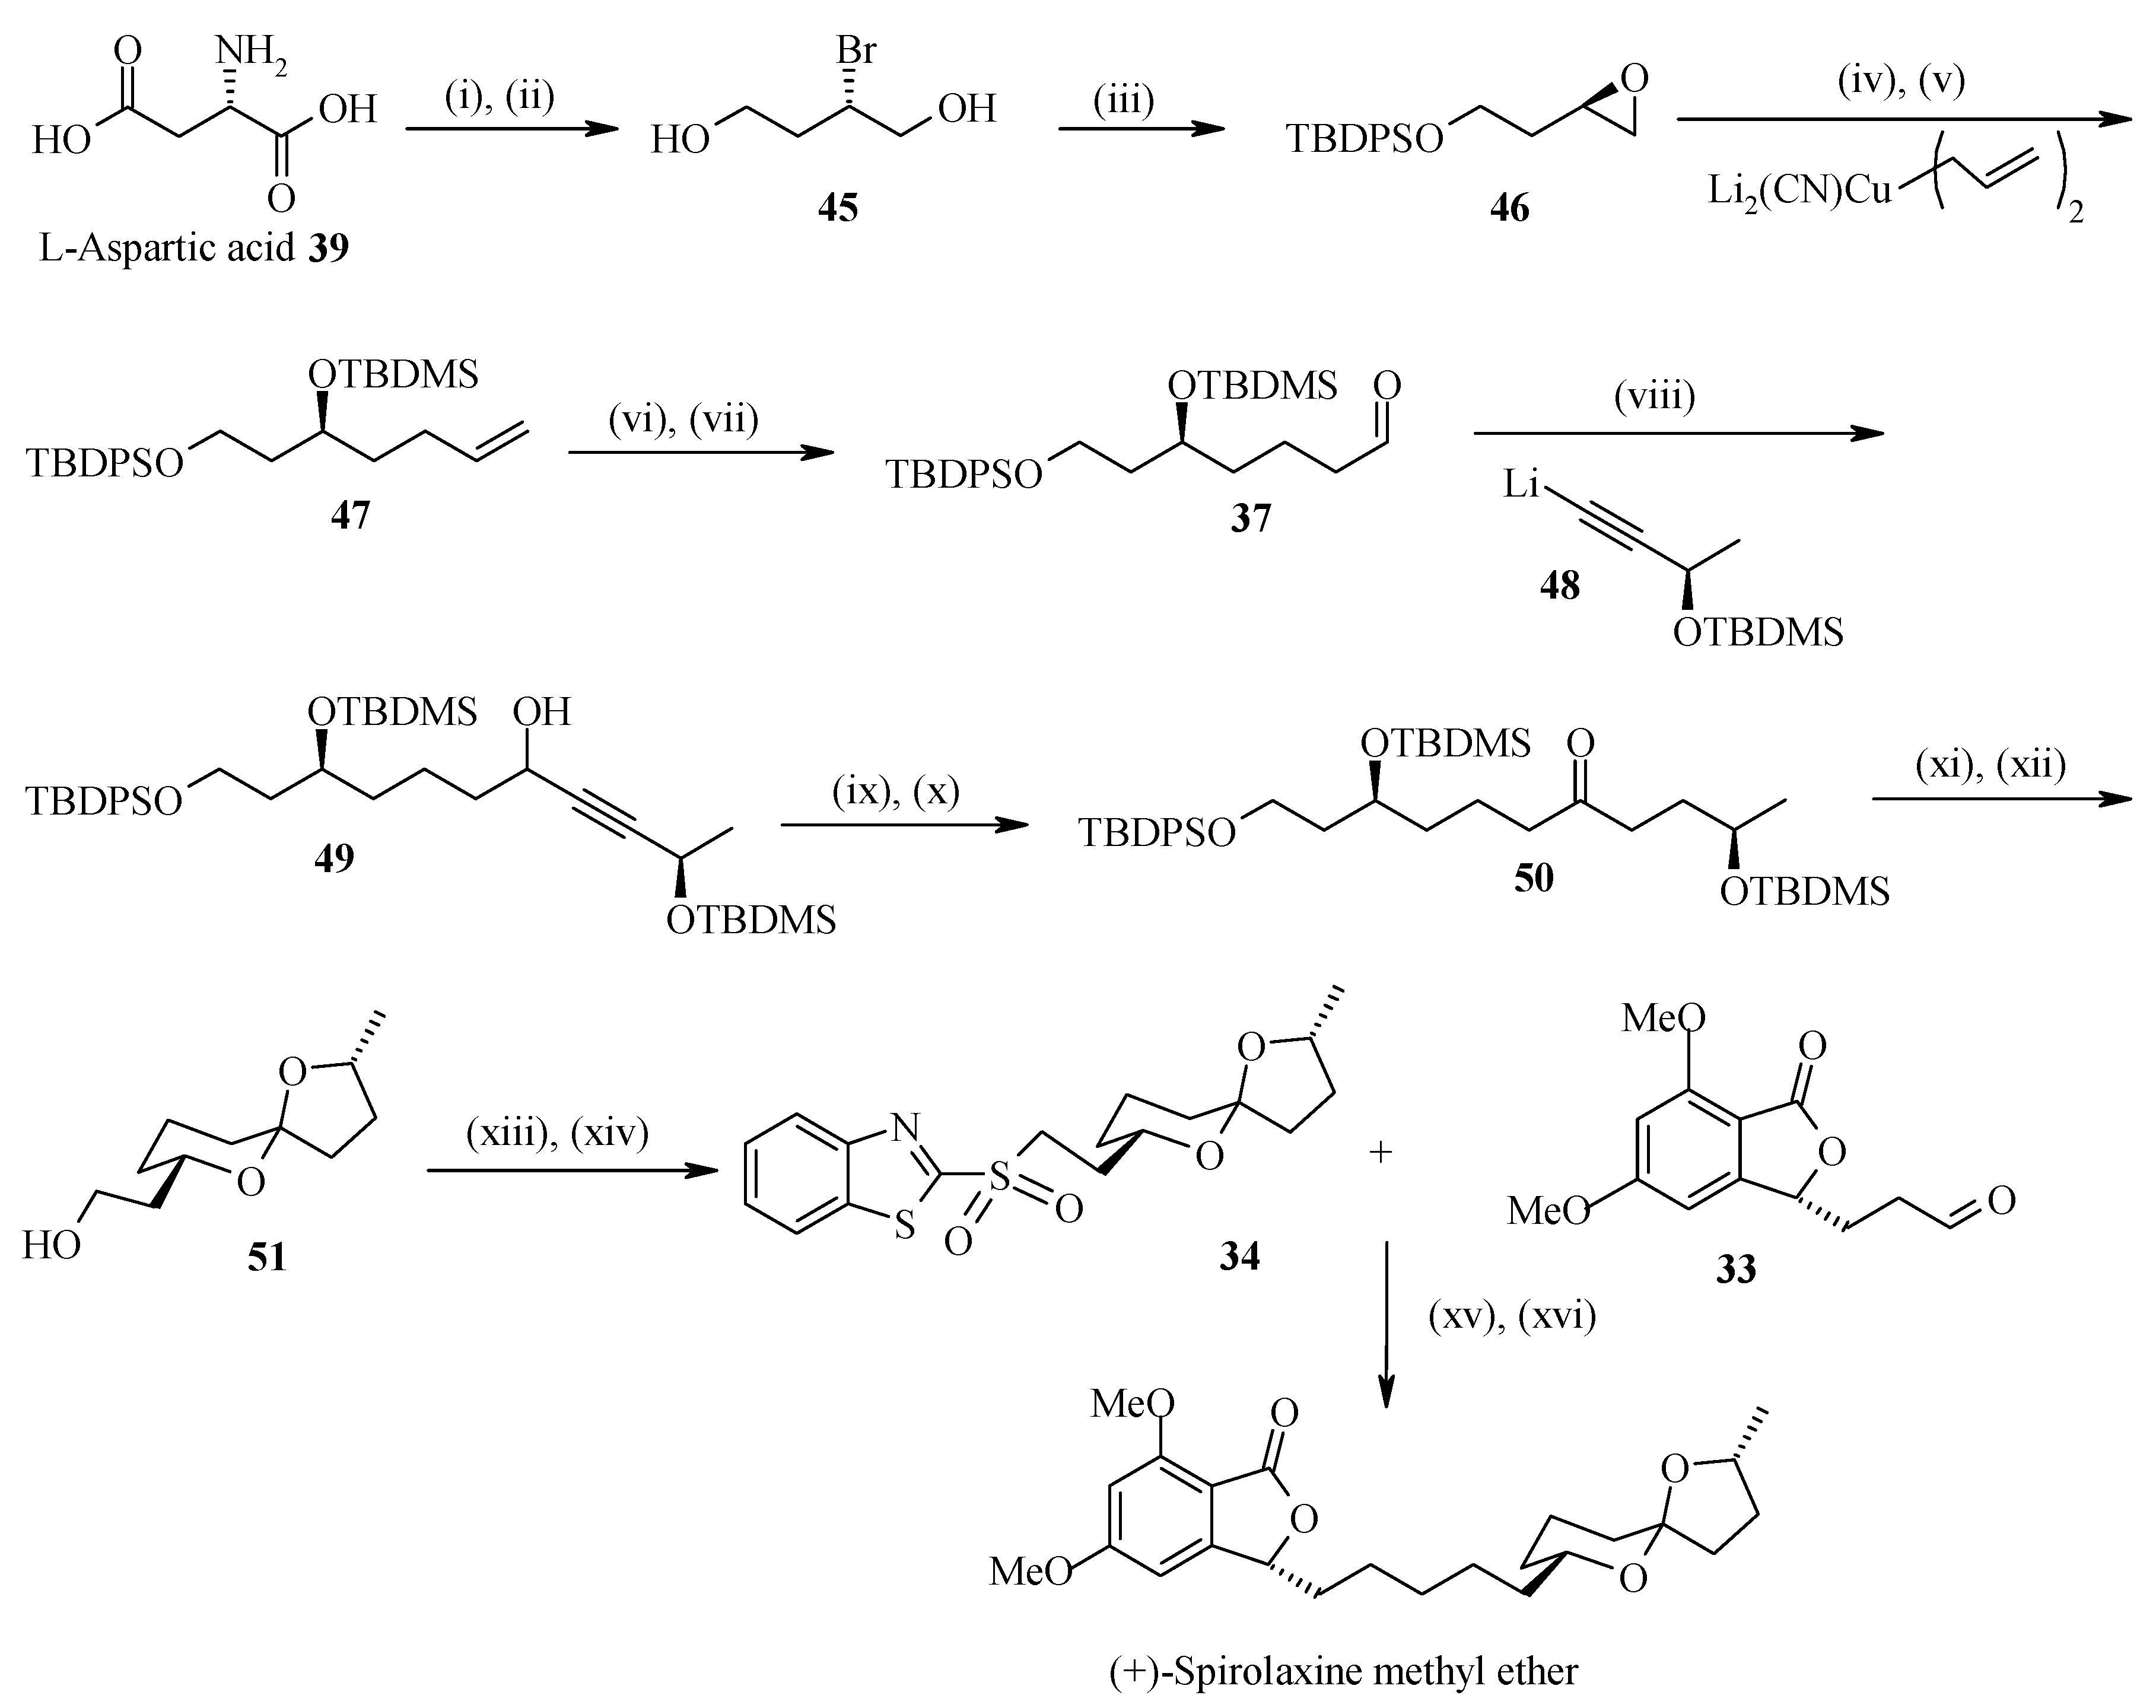 synthesis of ofw Synthesis of alumina reinforced nanostructured α-brass by mechanochemical reduction of cuo and zno w august 2010 materials chemistry.